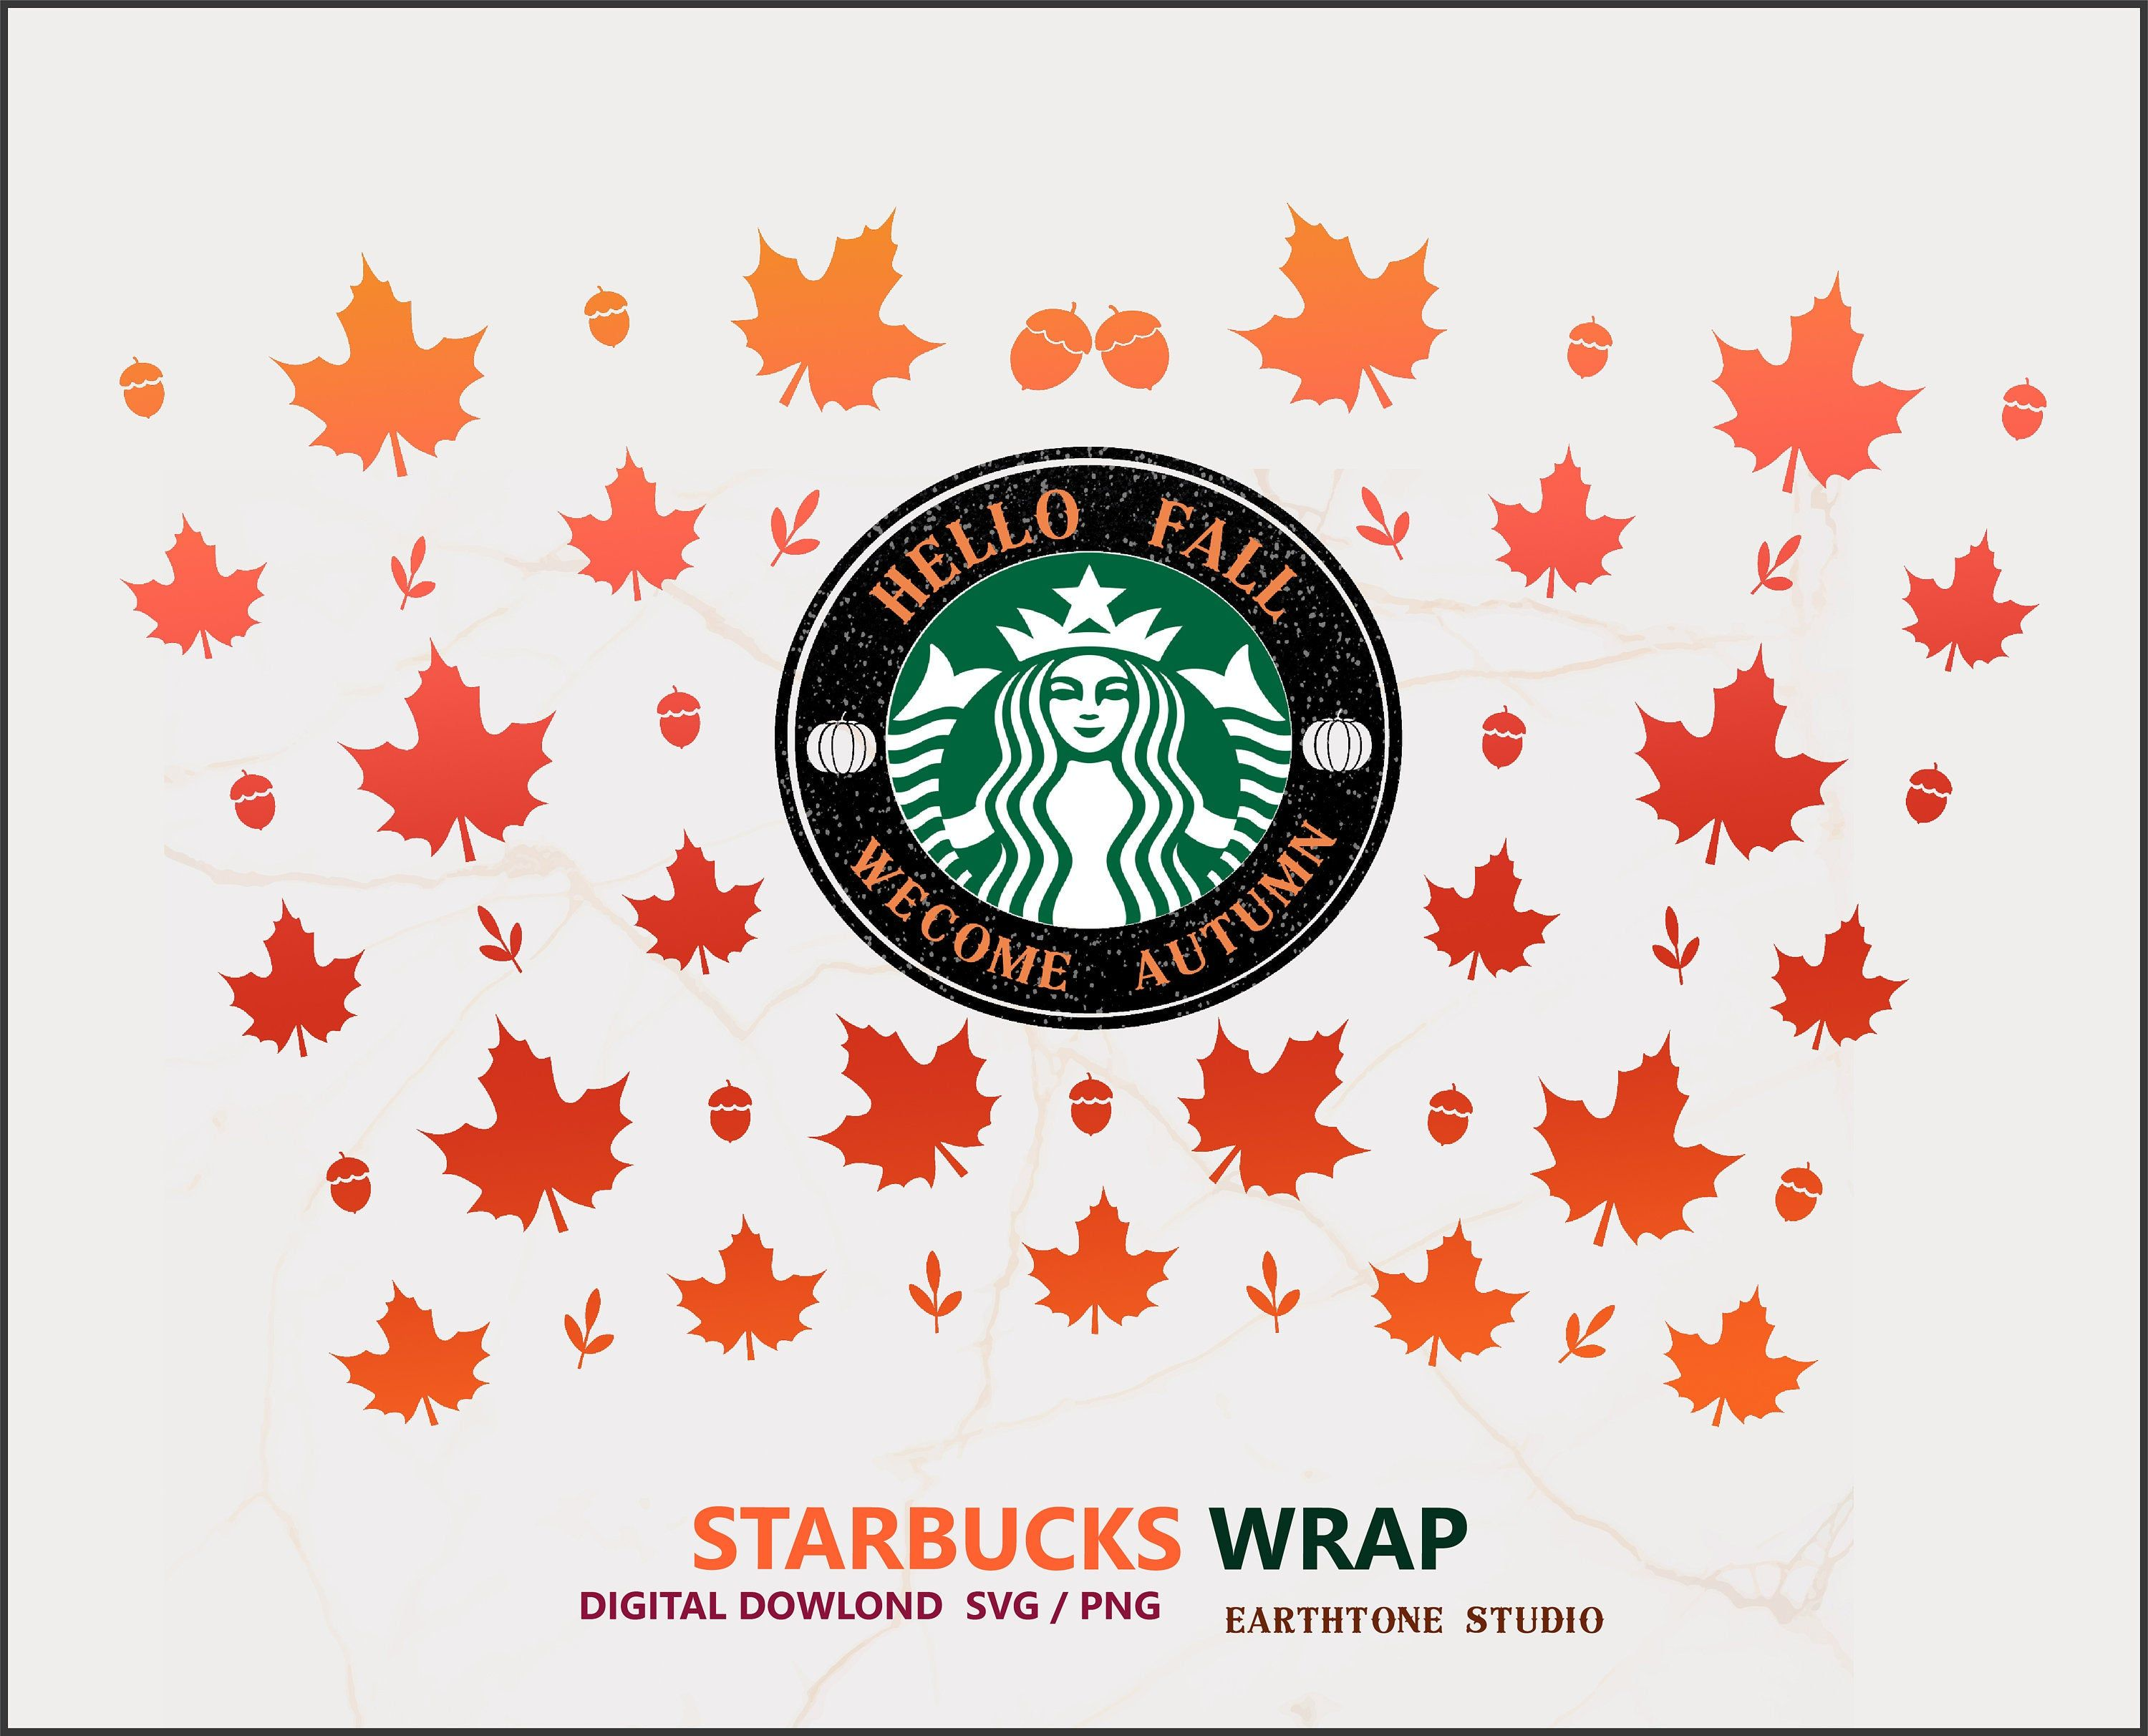 Fall Seamless Full Wrap Svg For Starbucks Venti Cold Cup 24 Oz Etsy In 2020 Starbucks Halloween Craft Images Starbucks Fall